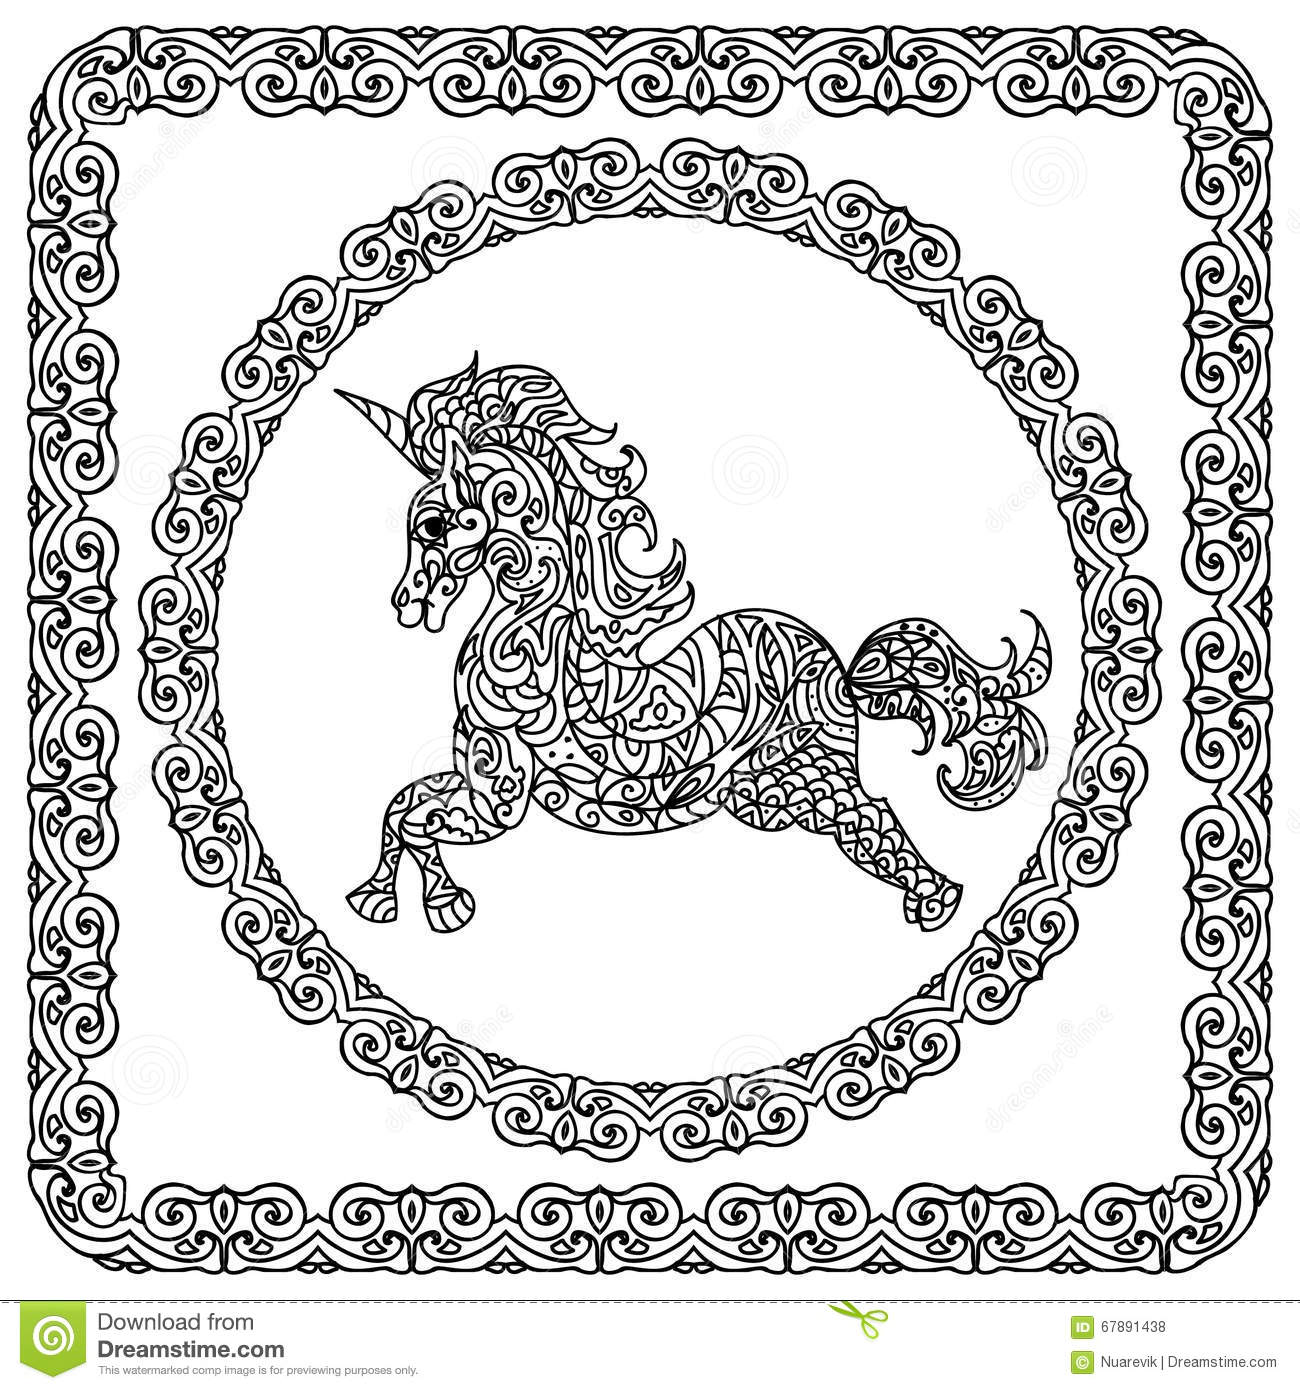 Unicorn With Mandala And Paisley Ornament Horizontal Adult Coloring Page Stock Illustration